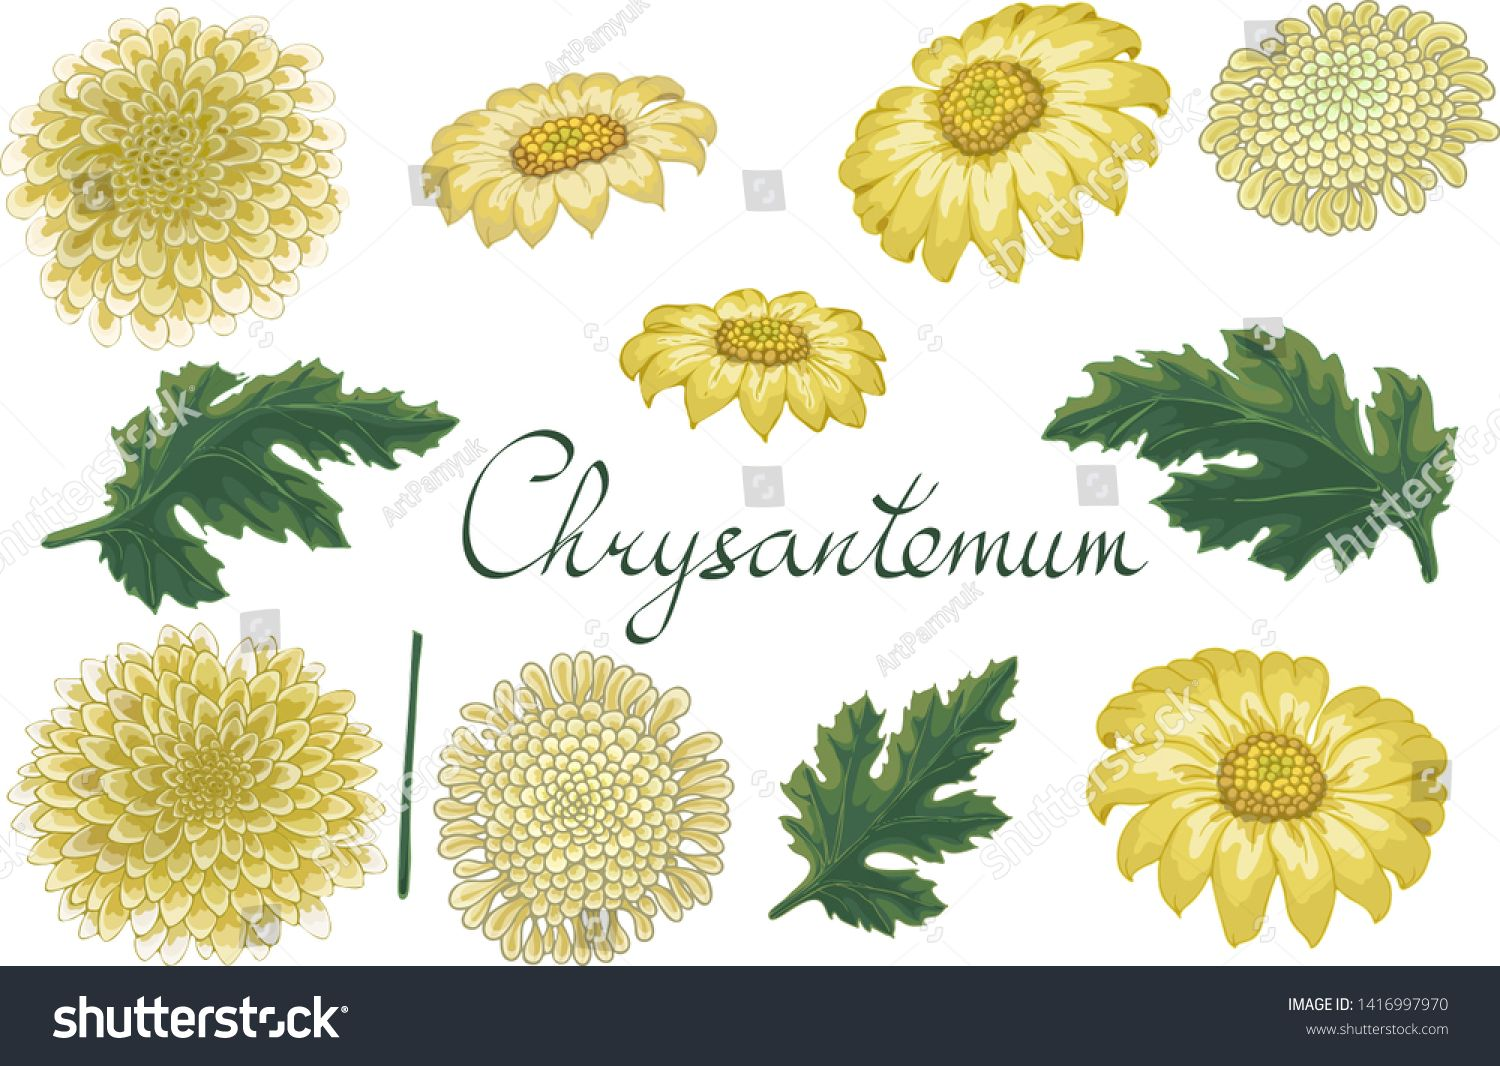 Vector Floral Illustration With Chrysanthemum Isolated Elements On A White Background Yellow Golden Daisy For Your F Floral Illustrations Illustration Floral